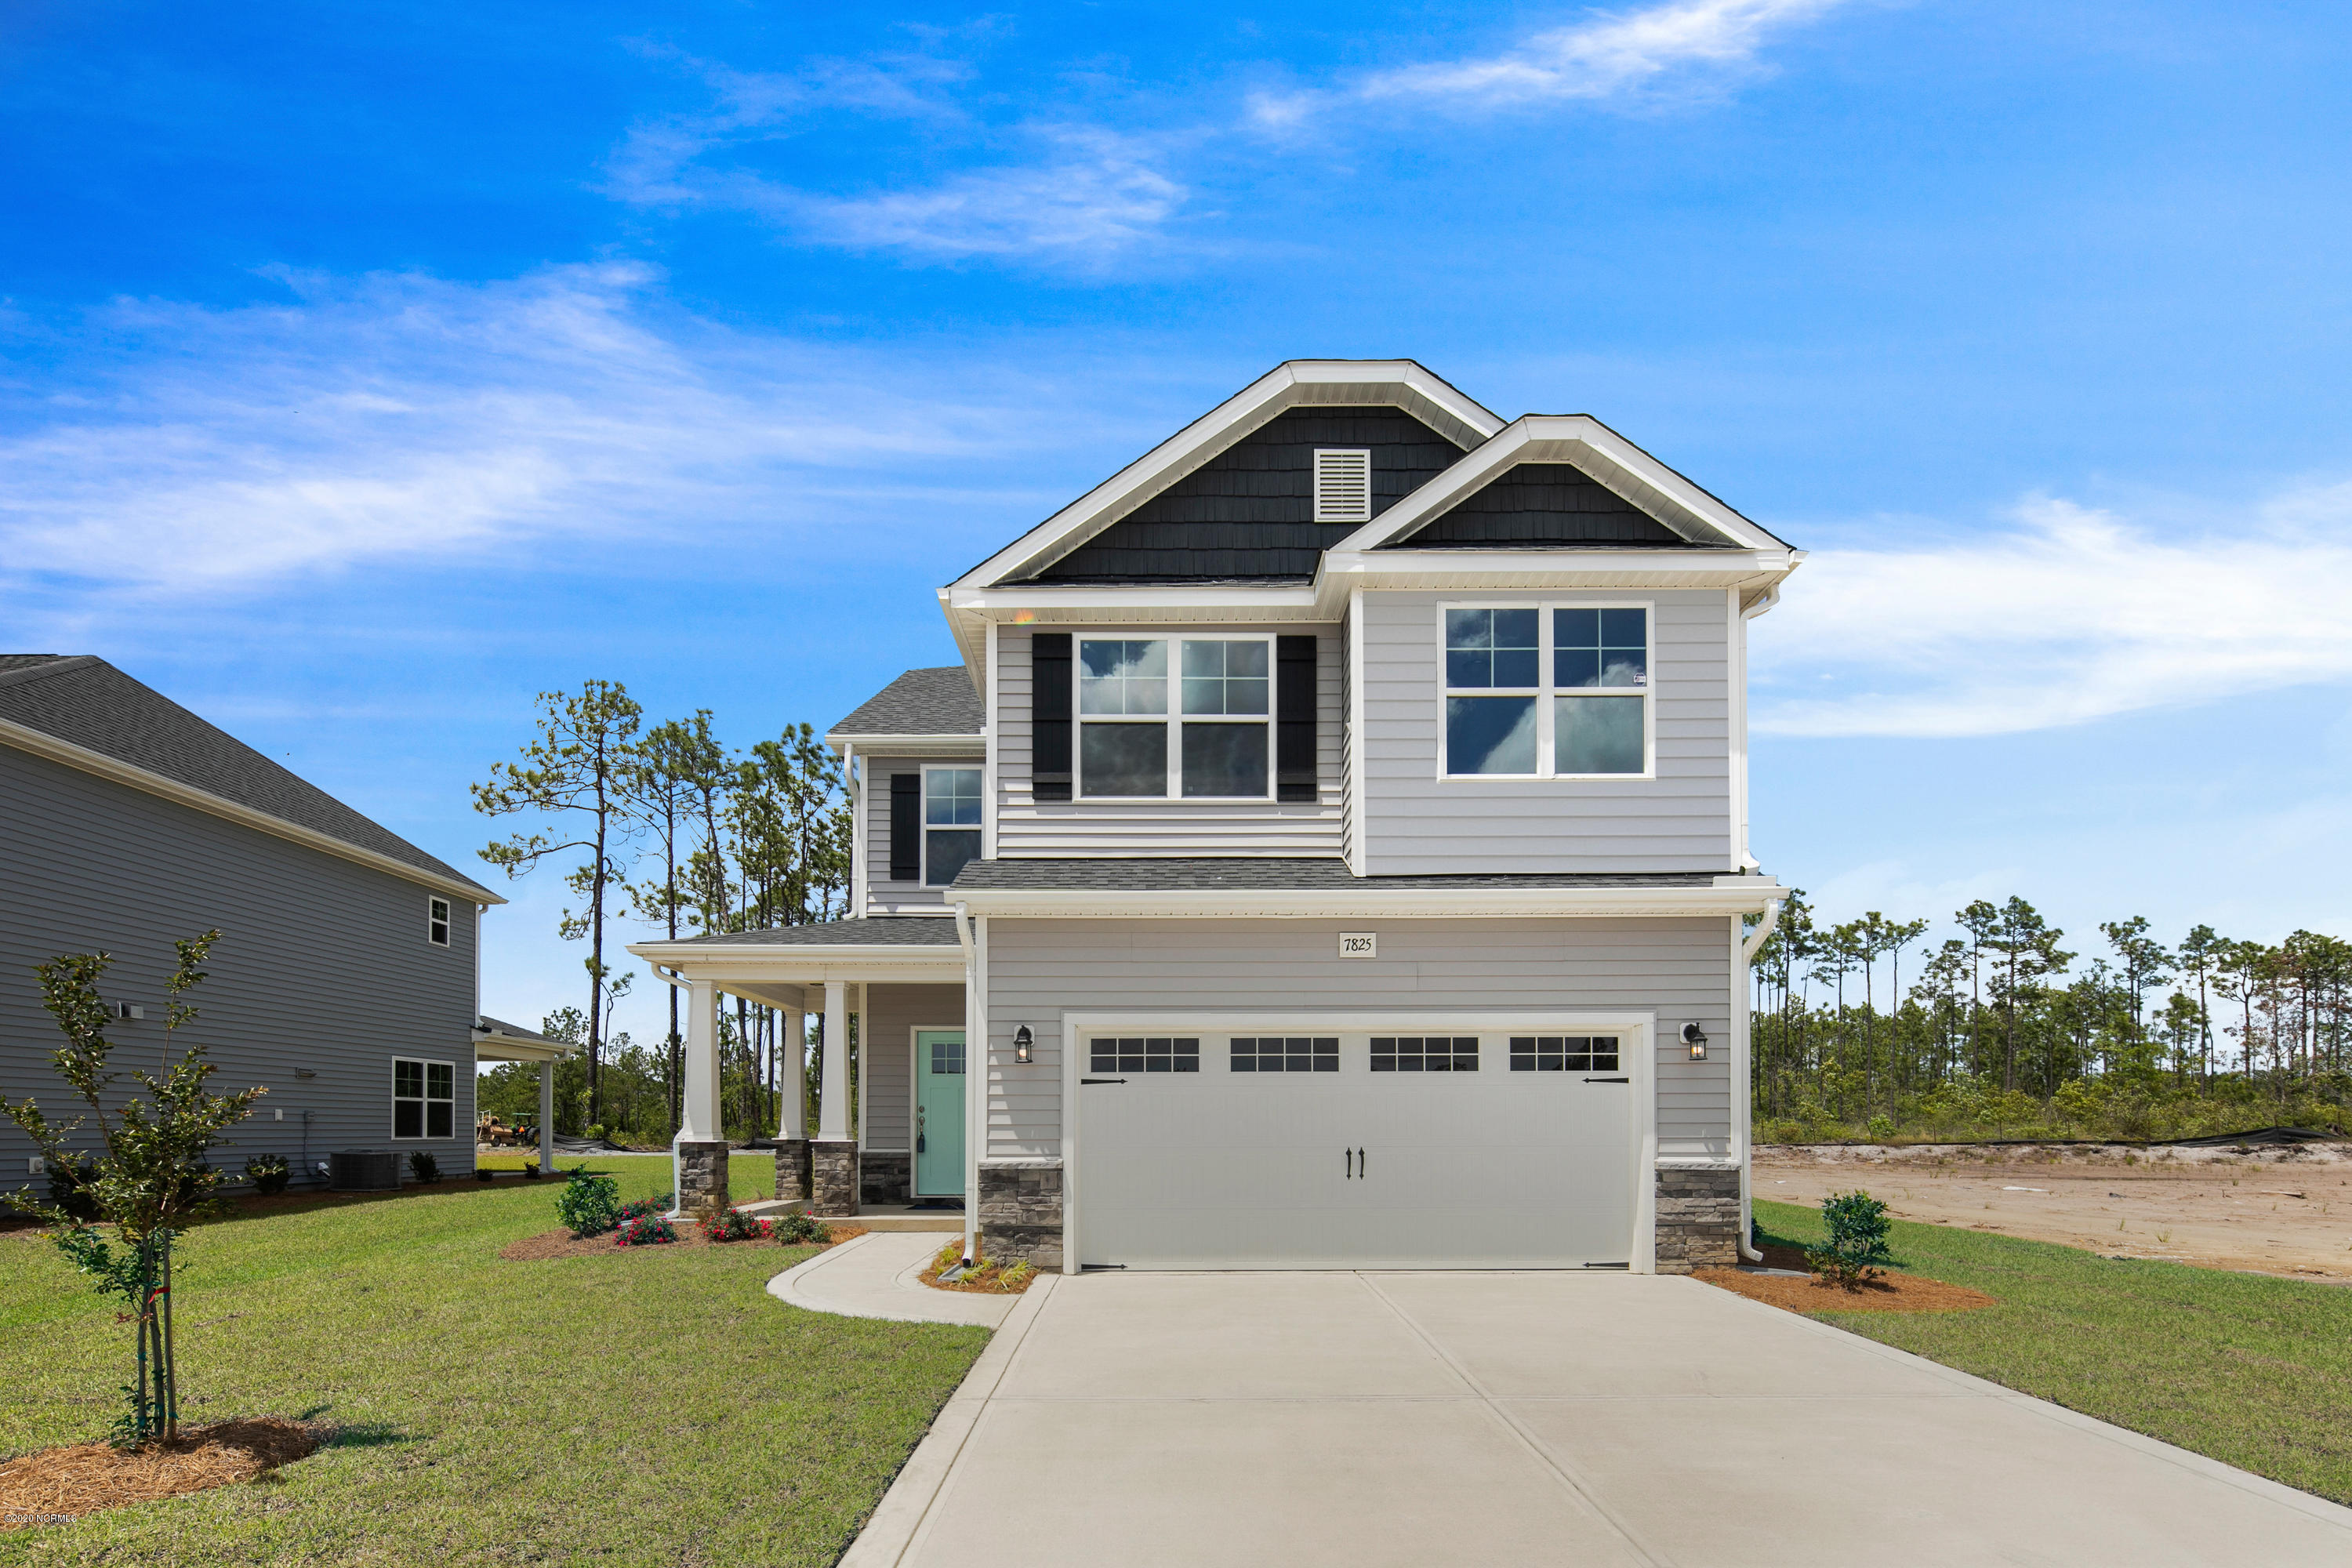 7825 Water Willow Drive Leland, NC 28451